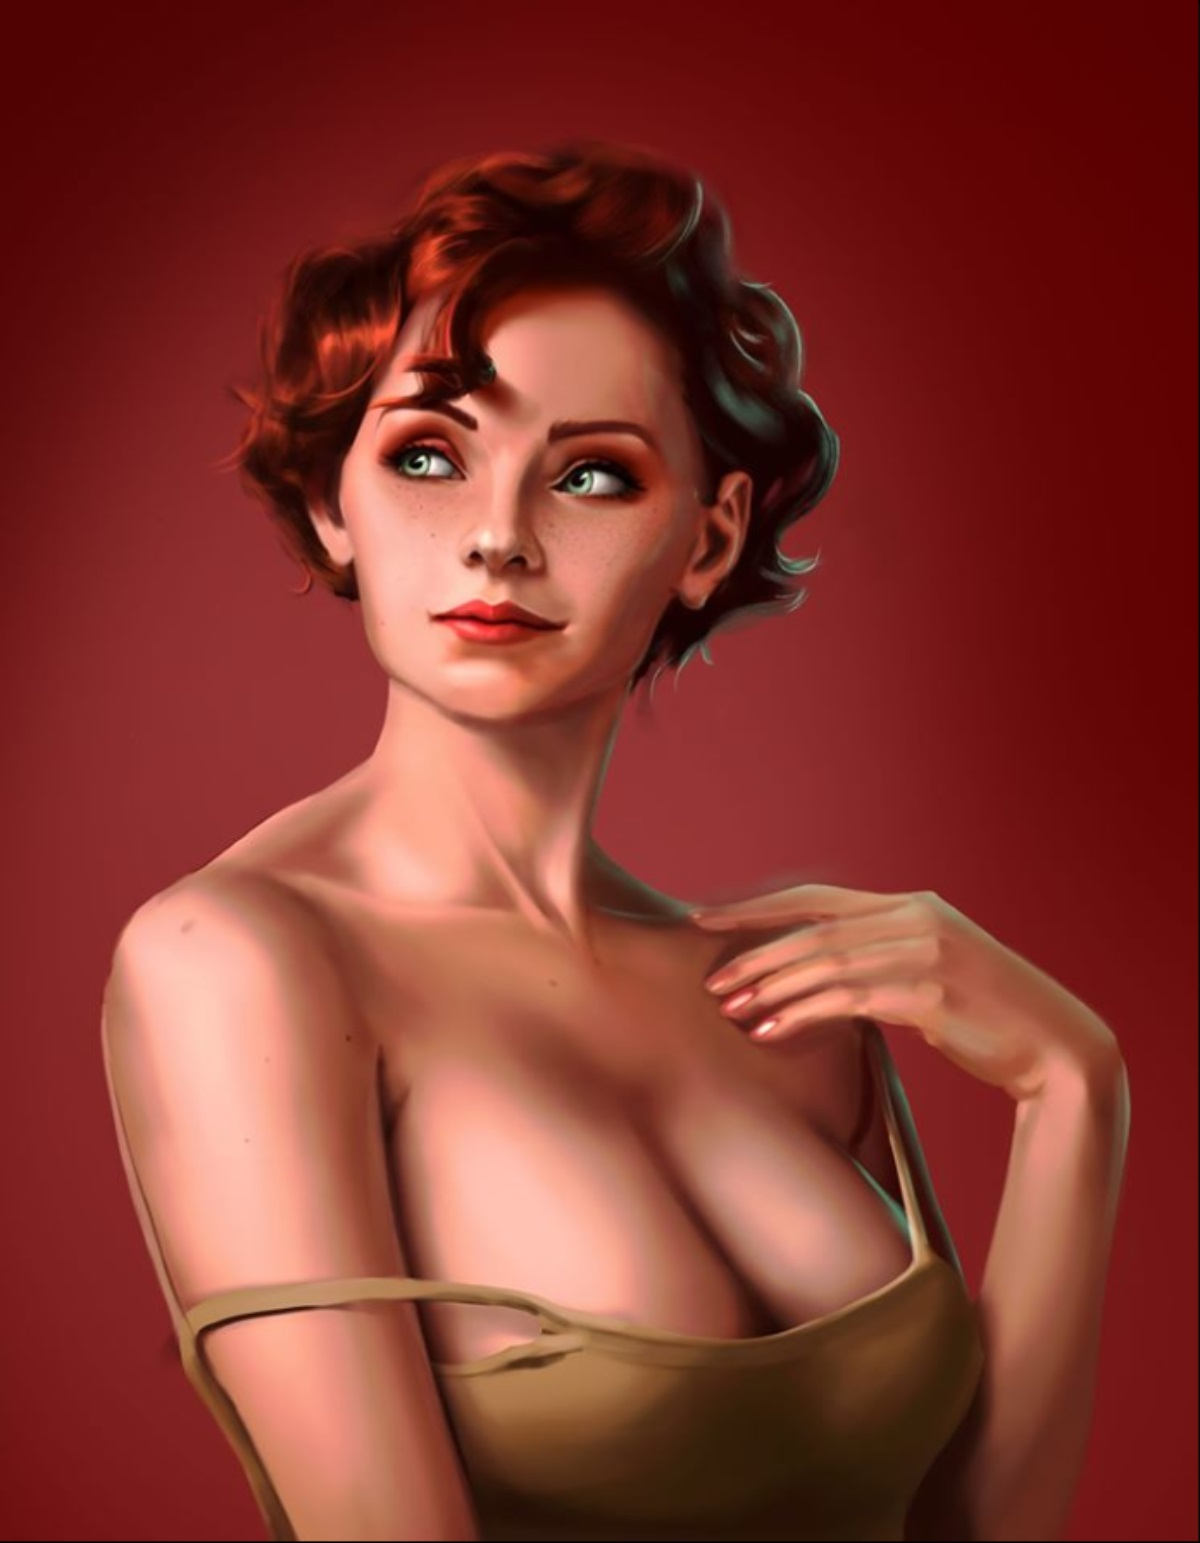 Kang Min Kyung Low Poly Art artwork by Anthony Taylor - art listed for sale on Artplode